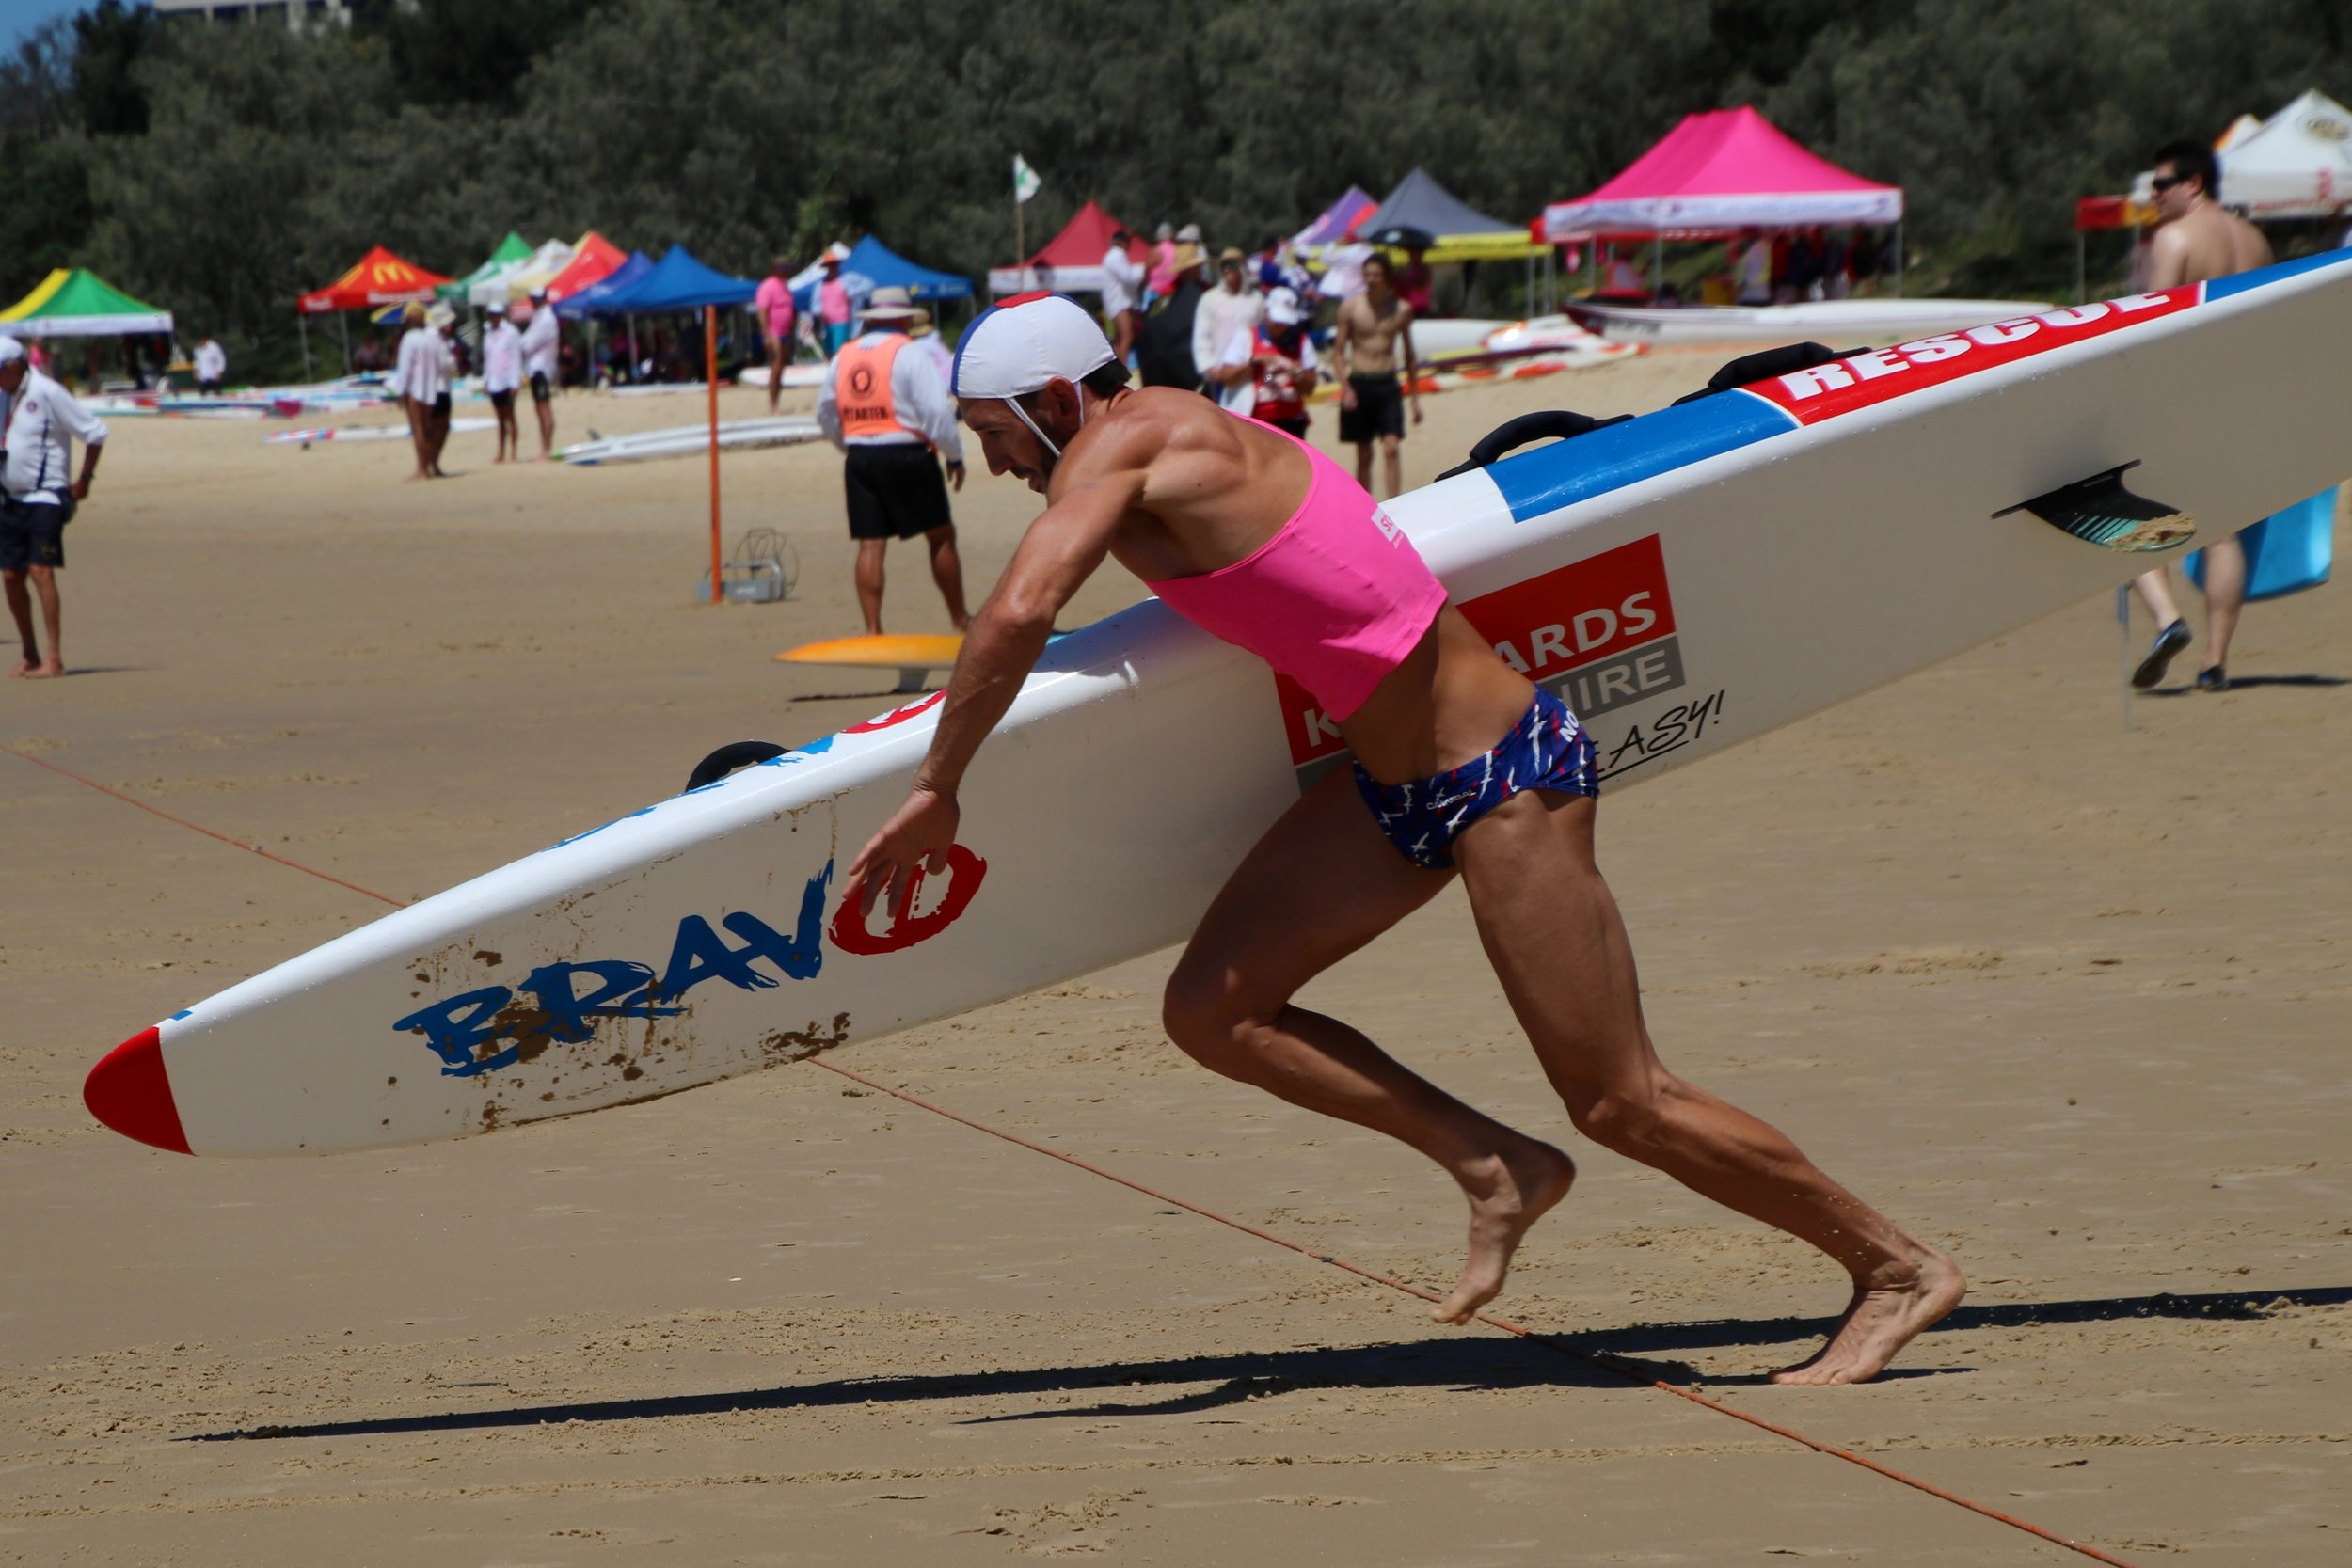 Surf Sports - At Nobby's Beach SLSC, we have a specialised coaching team that provides opportunities for members stay fit, active and promote healthy habits across a range of surf sports disciplines.